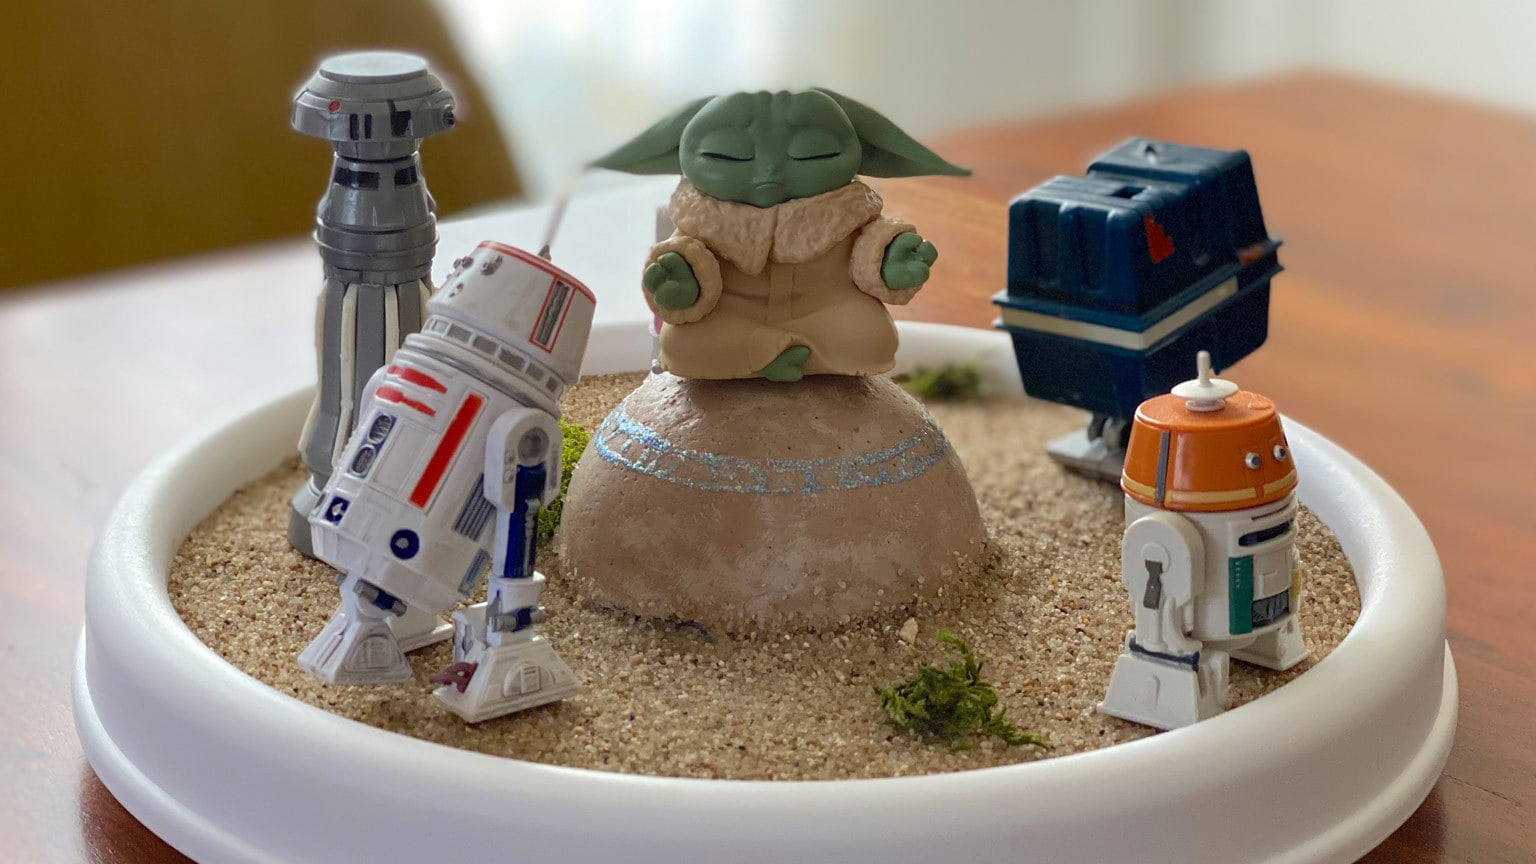 Your Favorite Action Figures Can Protect Grogu With This DIY Seeing Stone